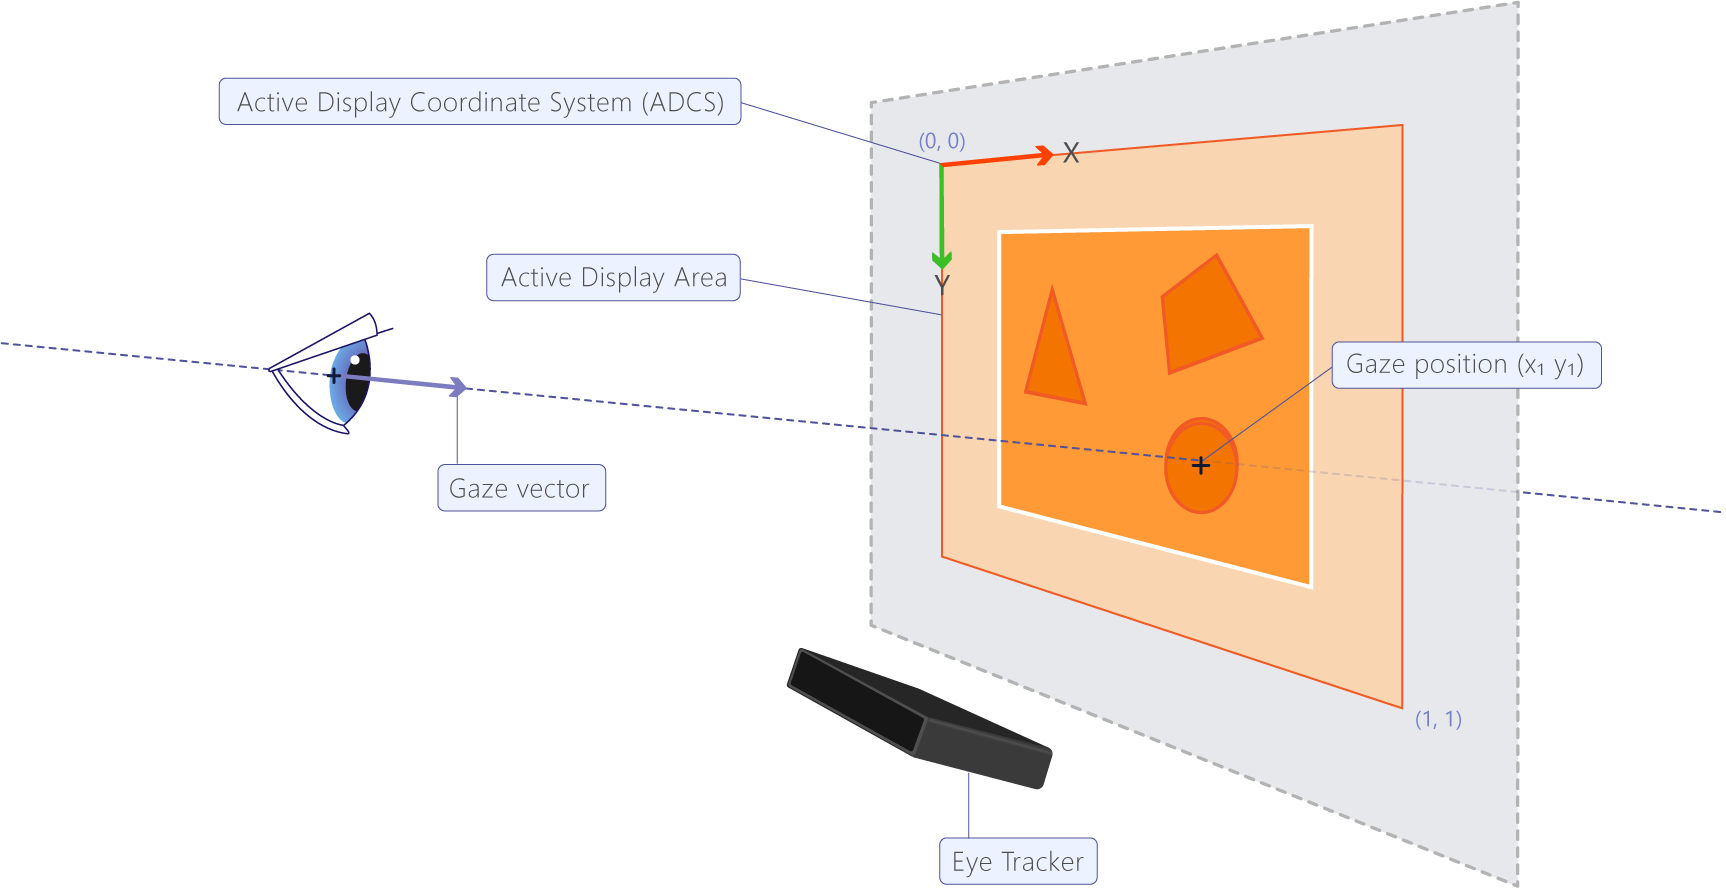 Active Display Coordinate System